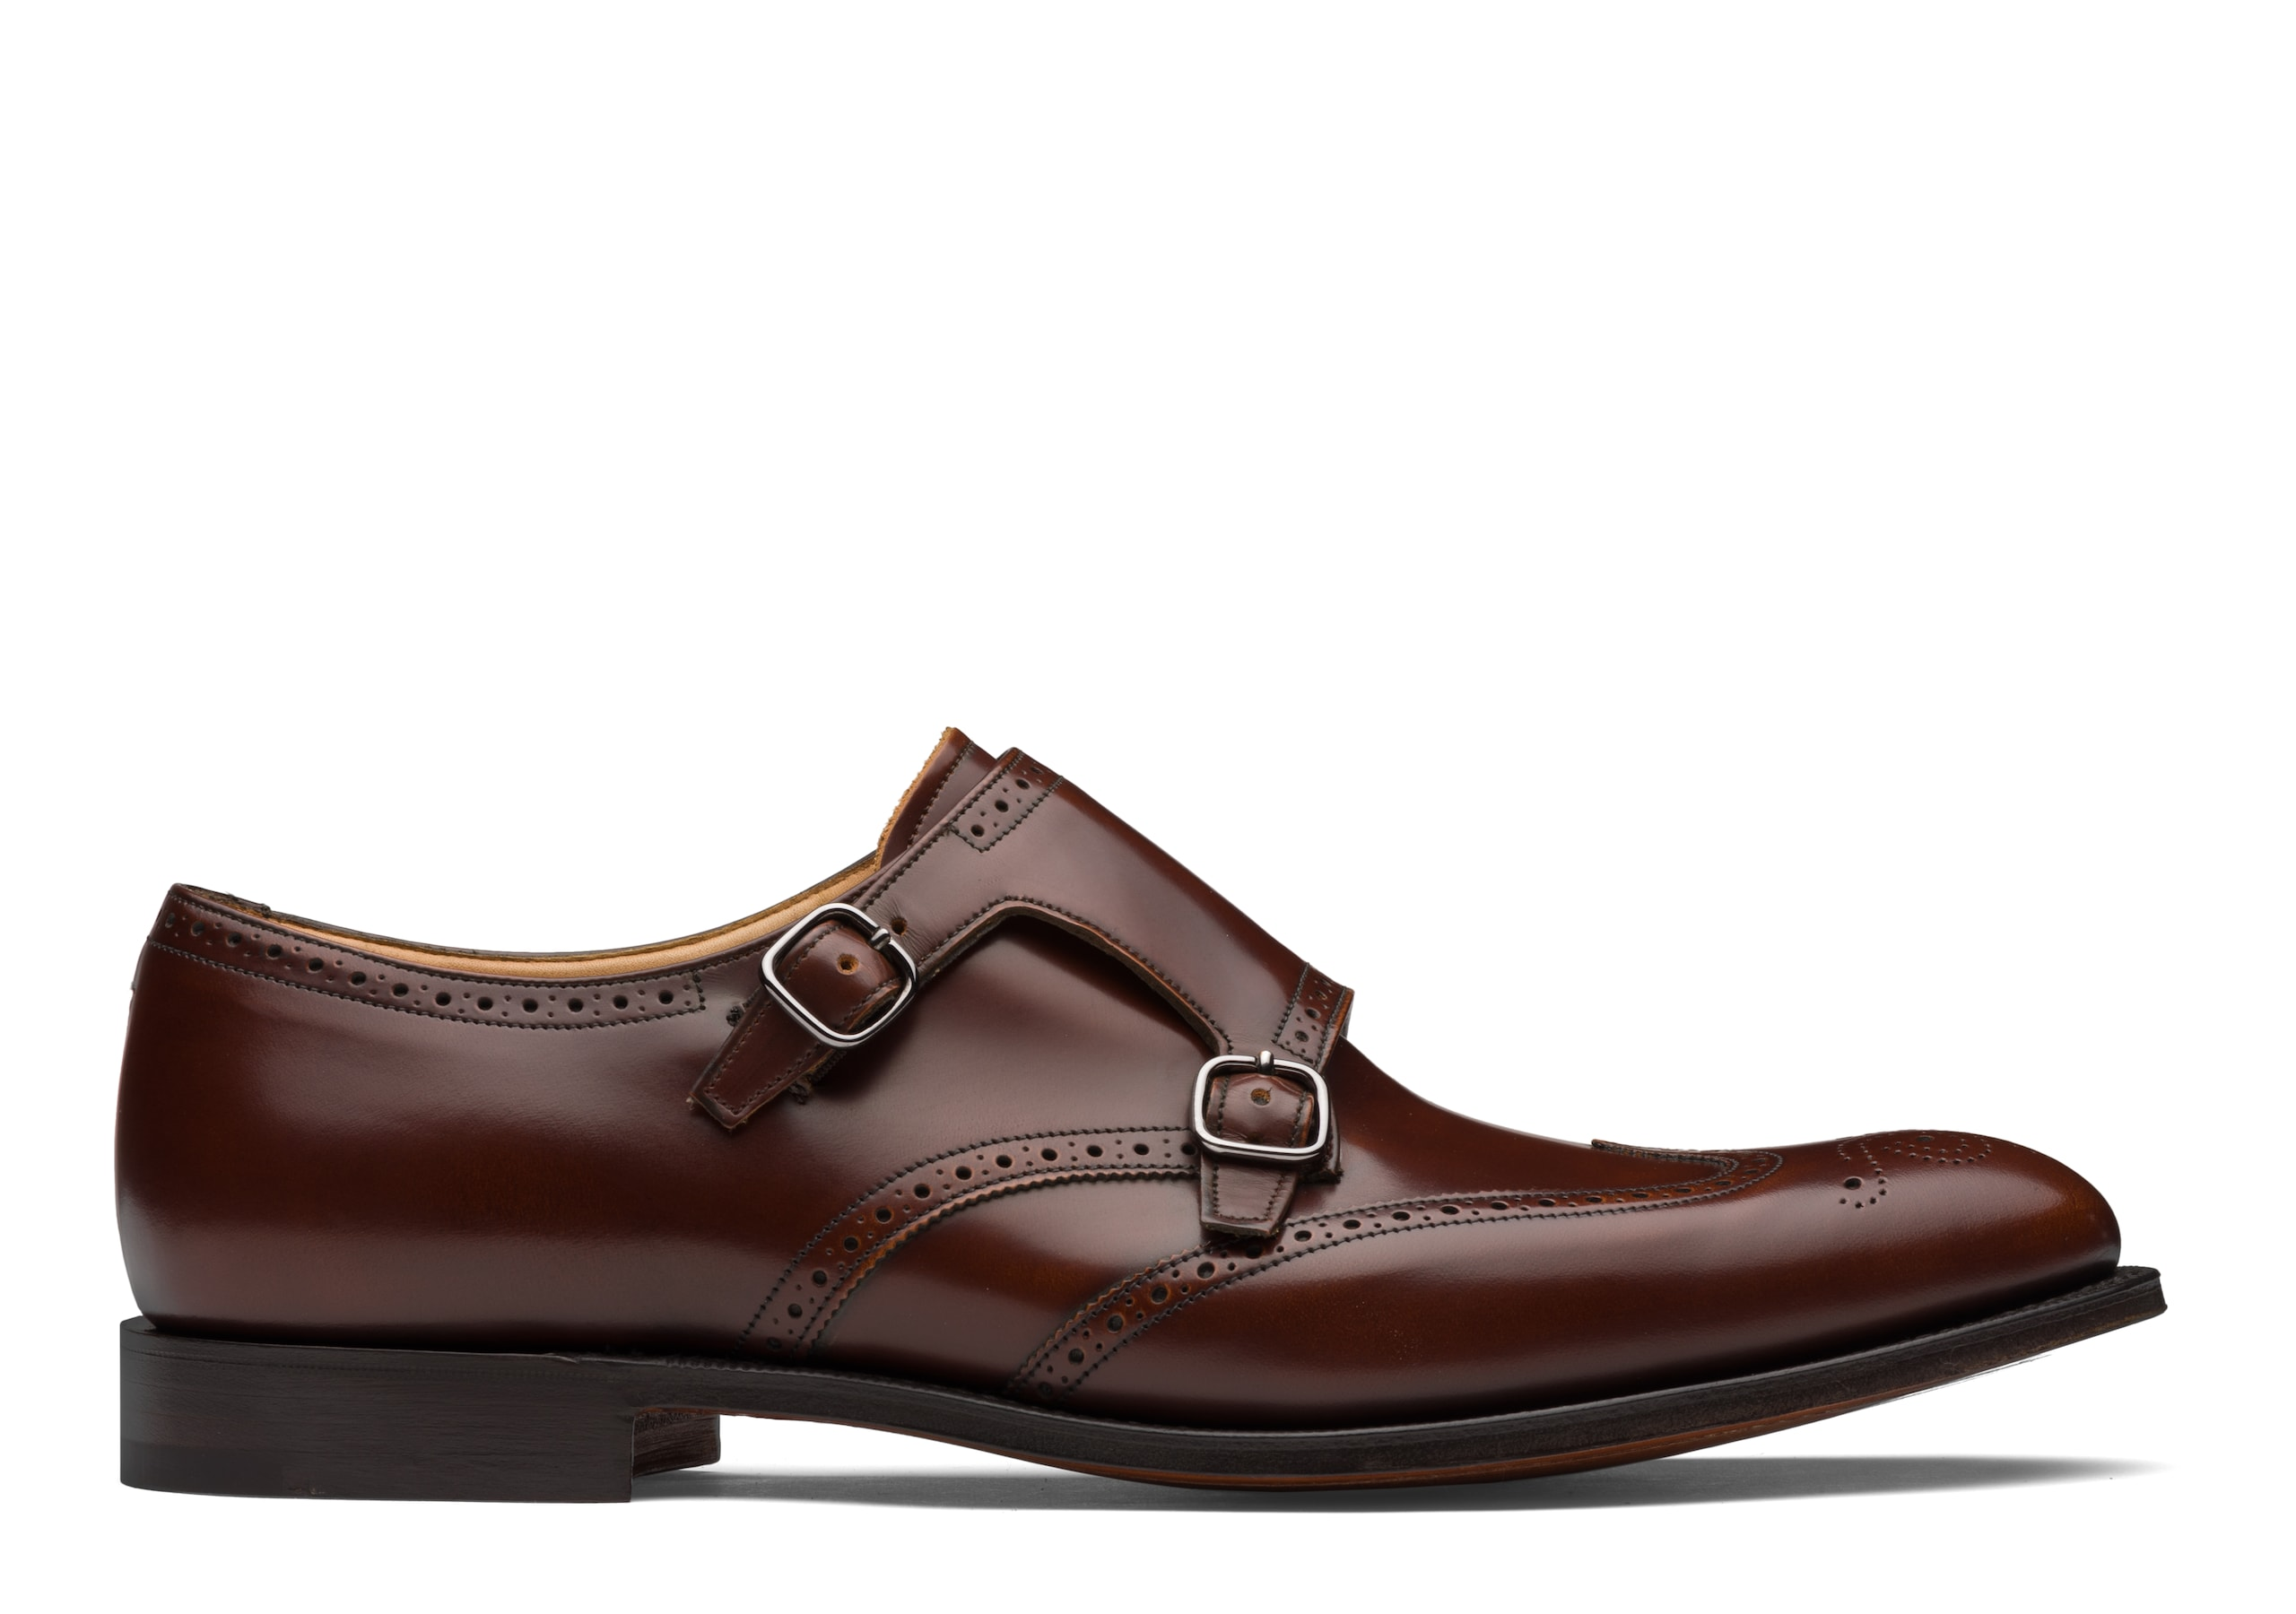 Chicago Church's Polished Fumè Monk Strap Brogue Brown